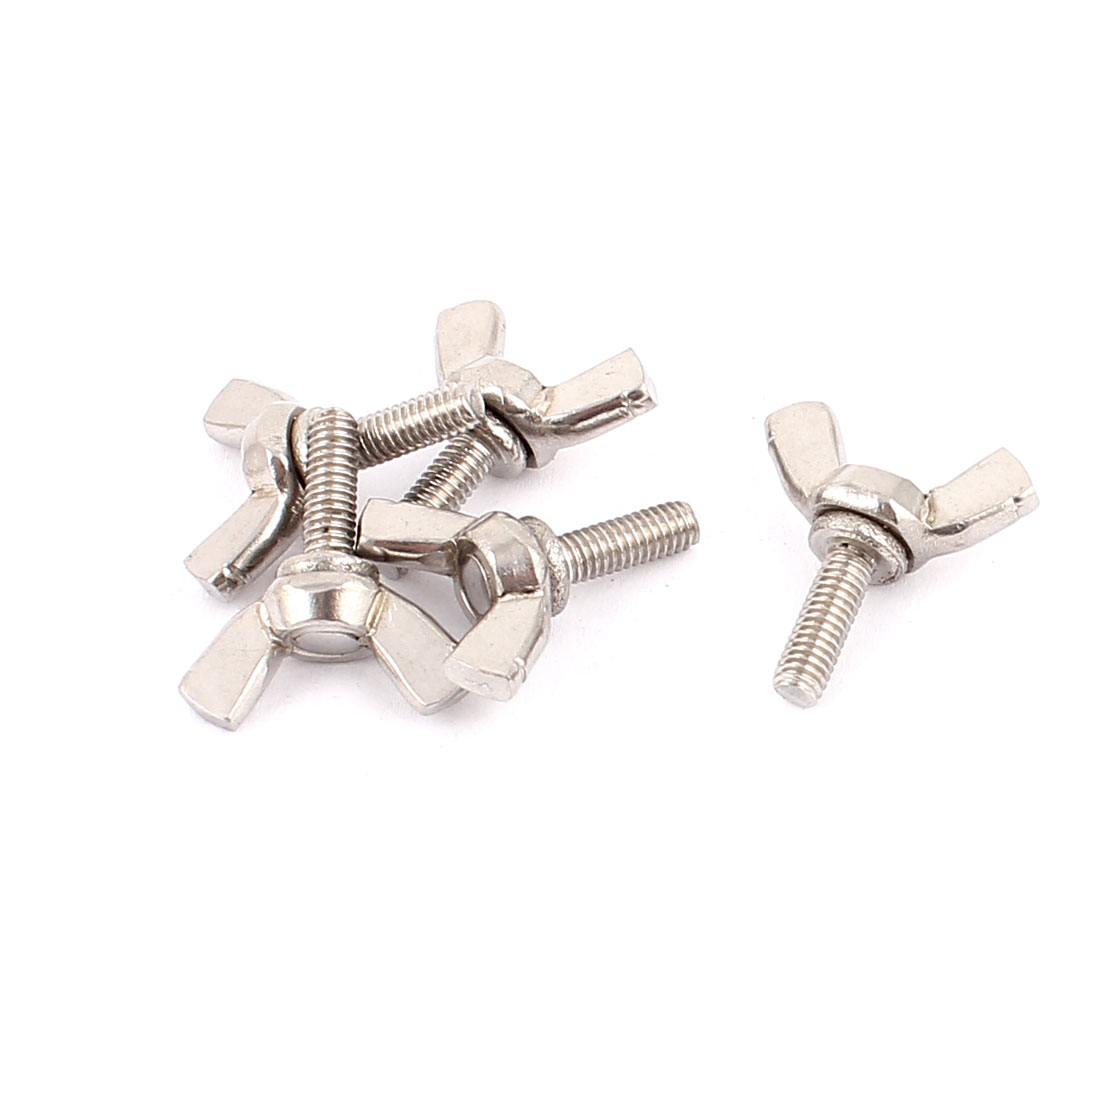 5pcs 304 Stainless Steel M4x12mm Thread Butterfly Head Wing Screws Bolts